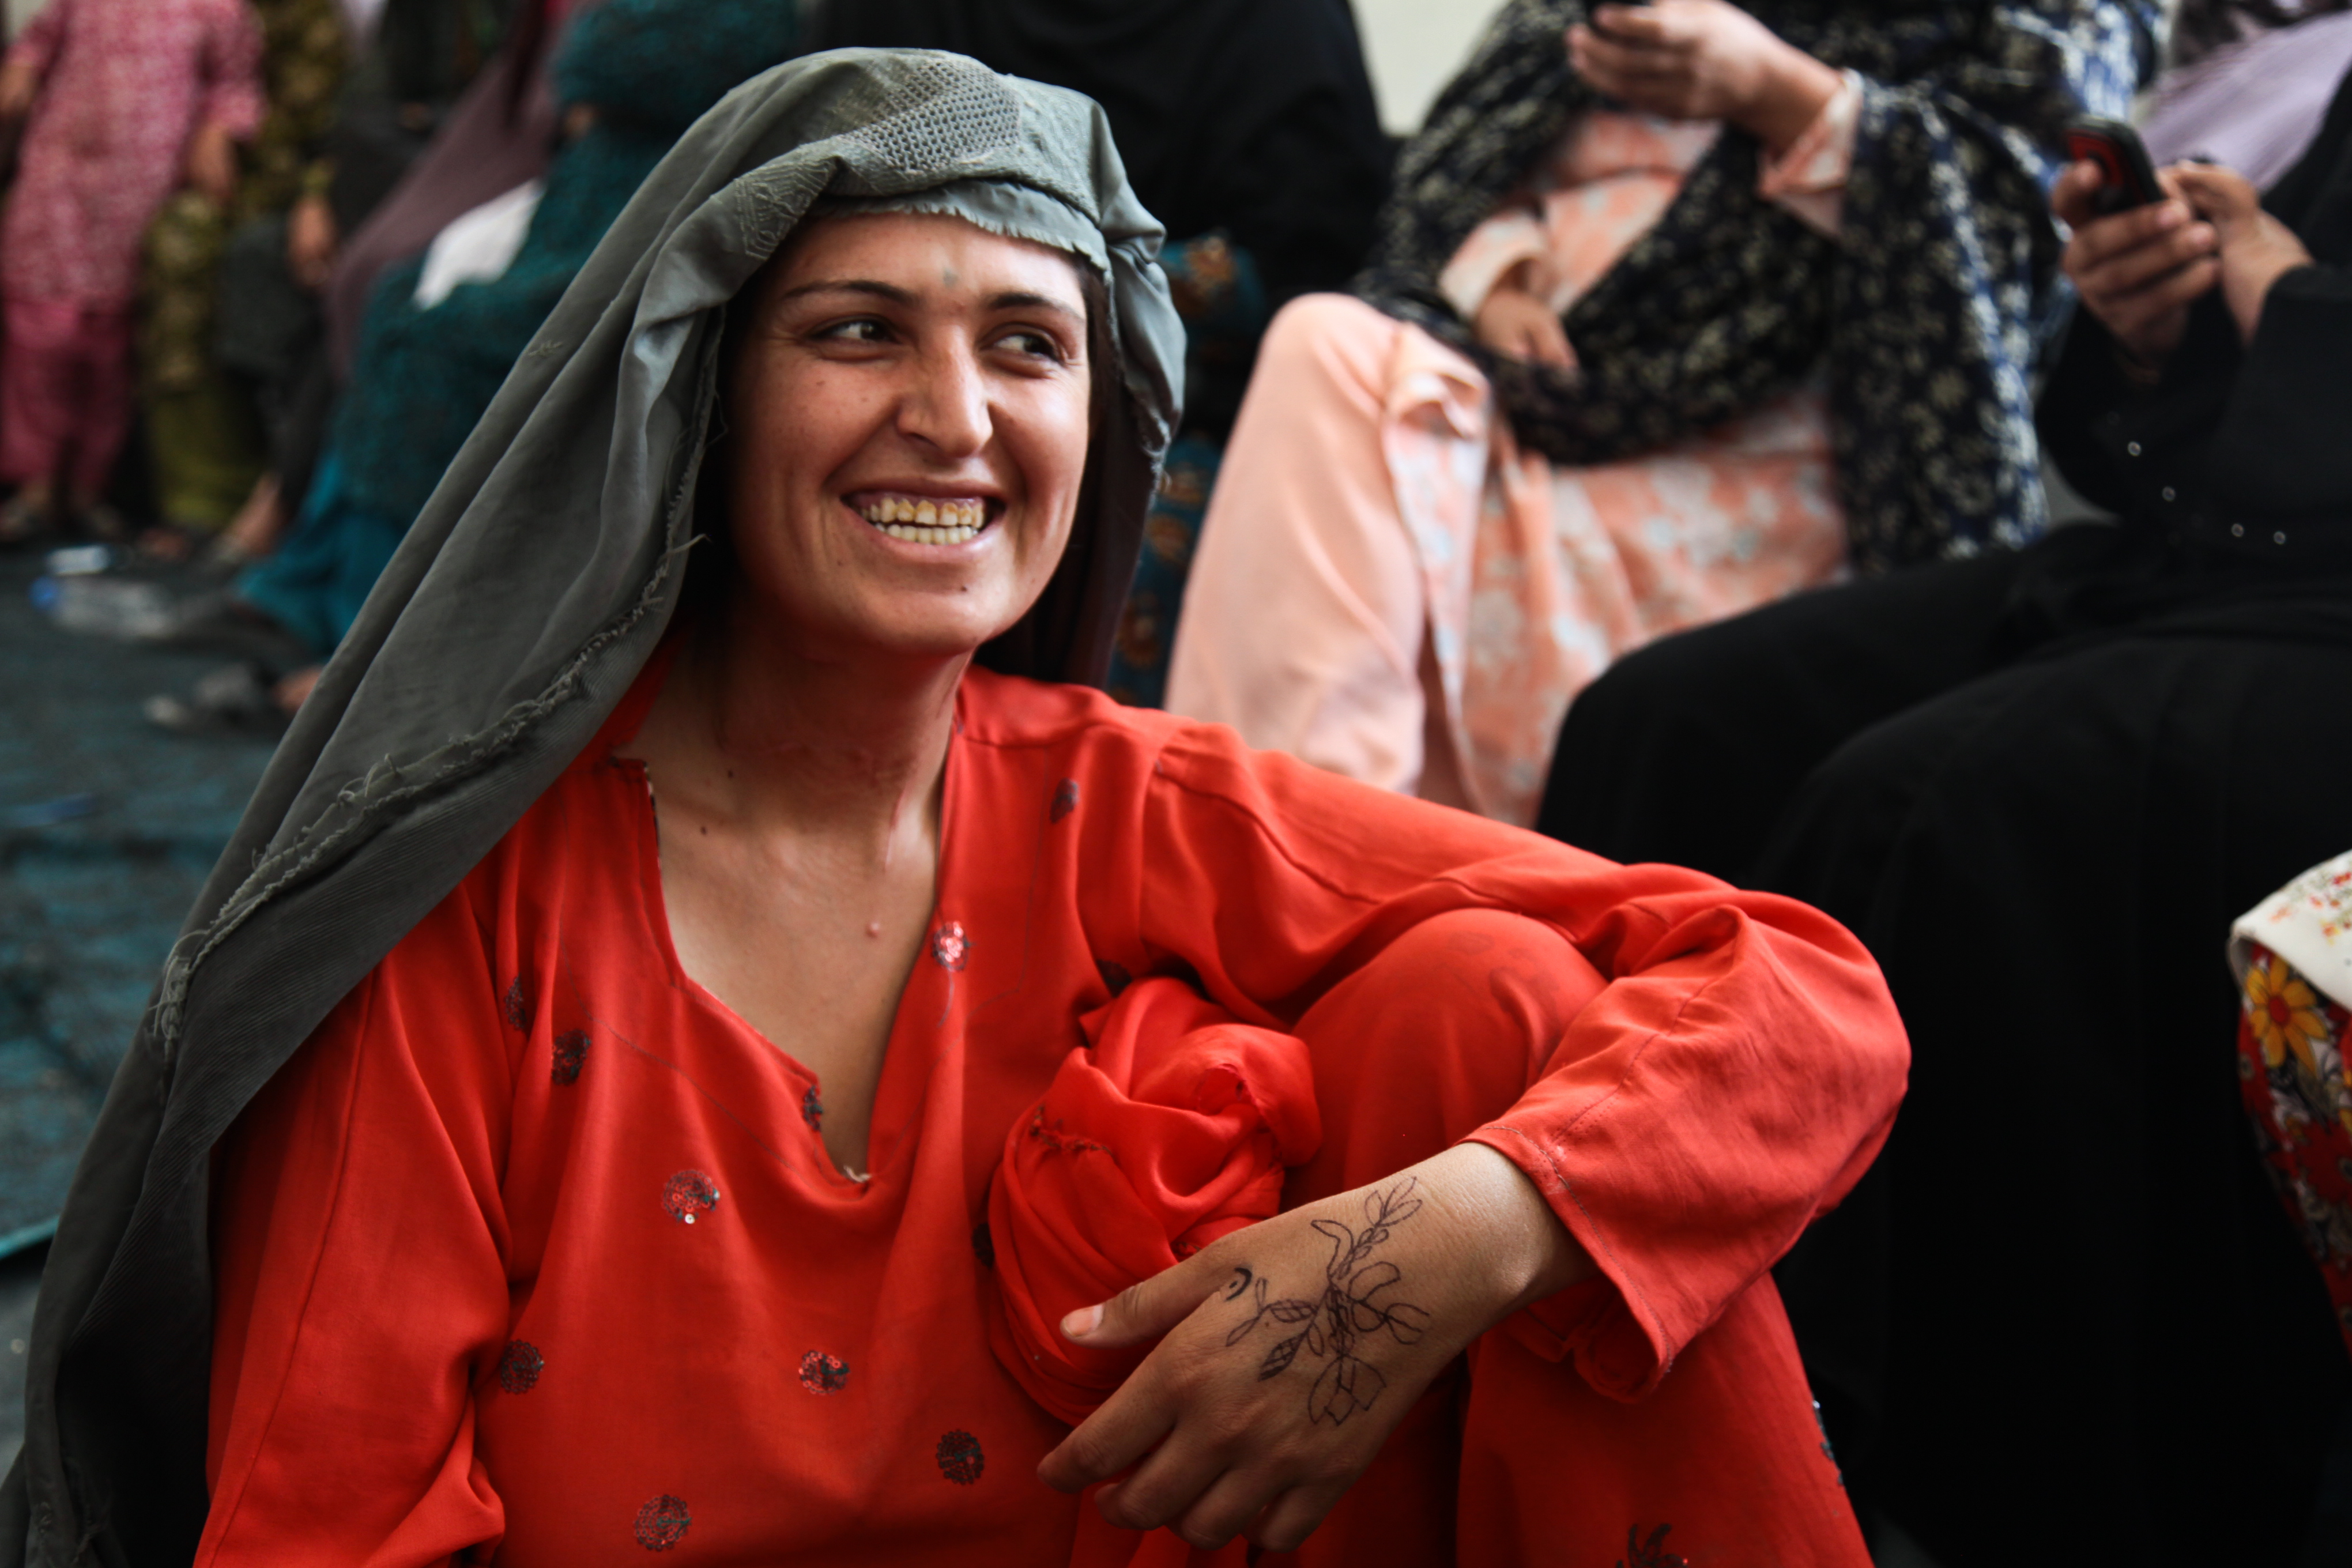 Afghan woman smiling in gathering